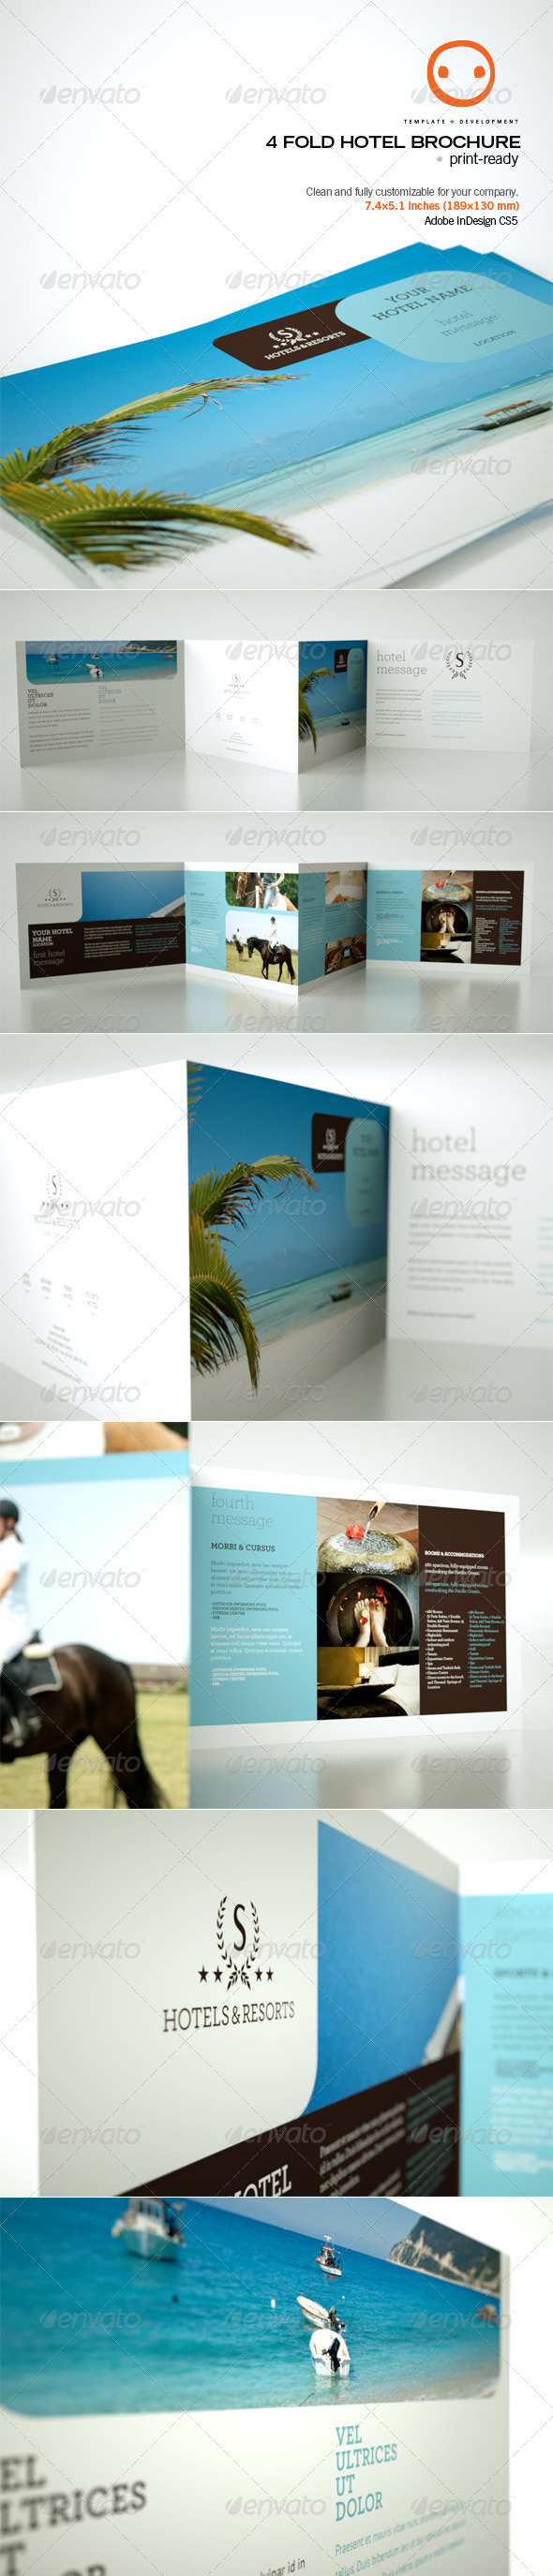 Graphic River 4 Fold Hotel Brochure Print Templates -  Brochures  Corporate 537003